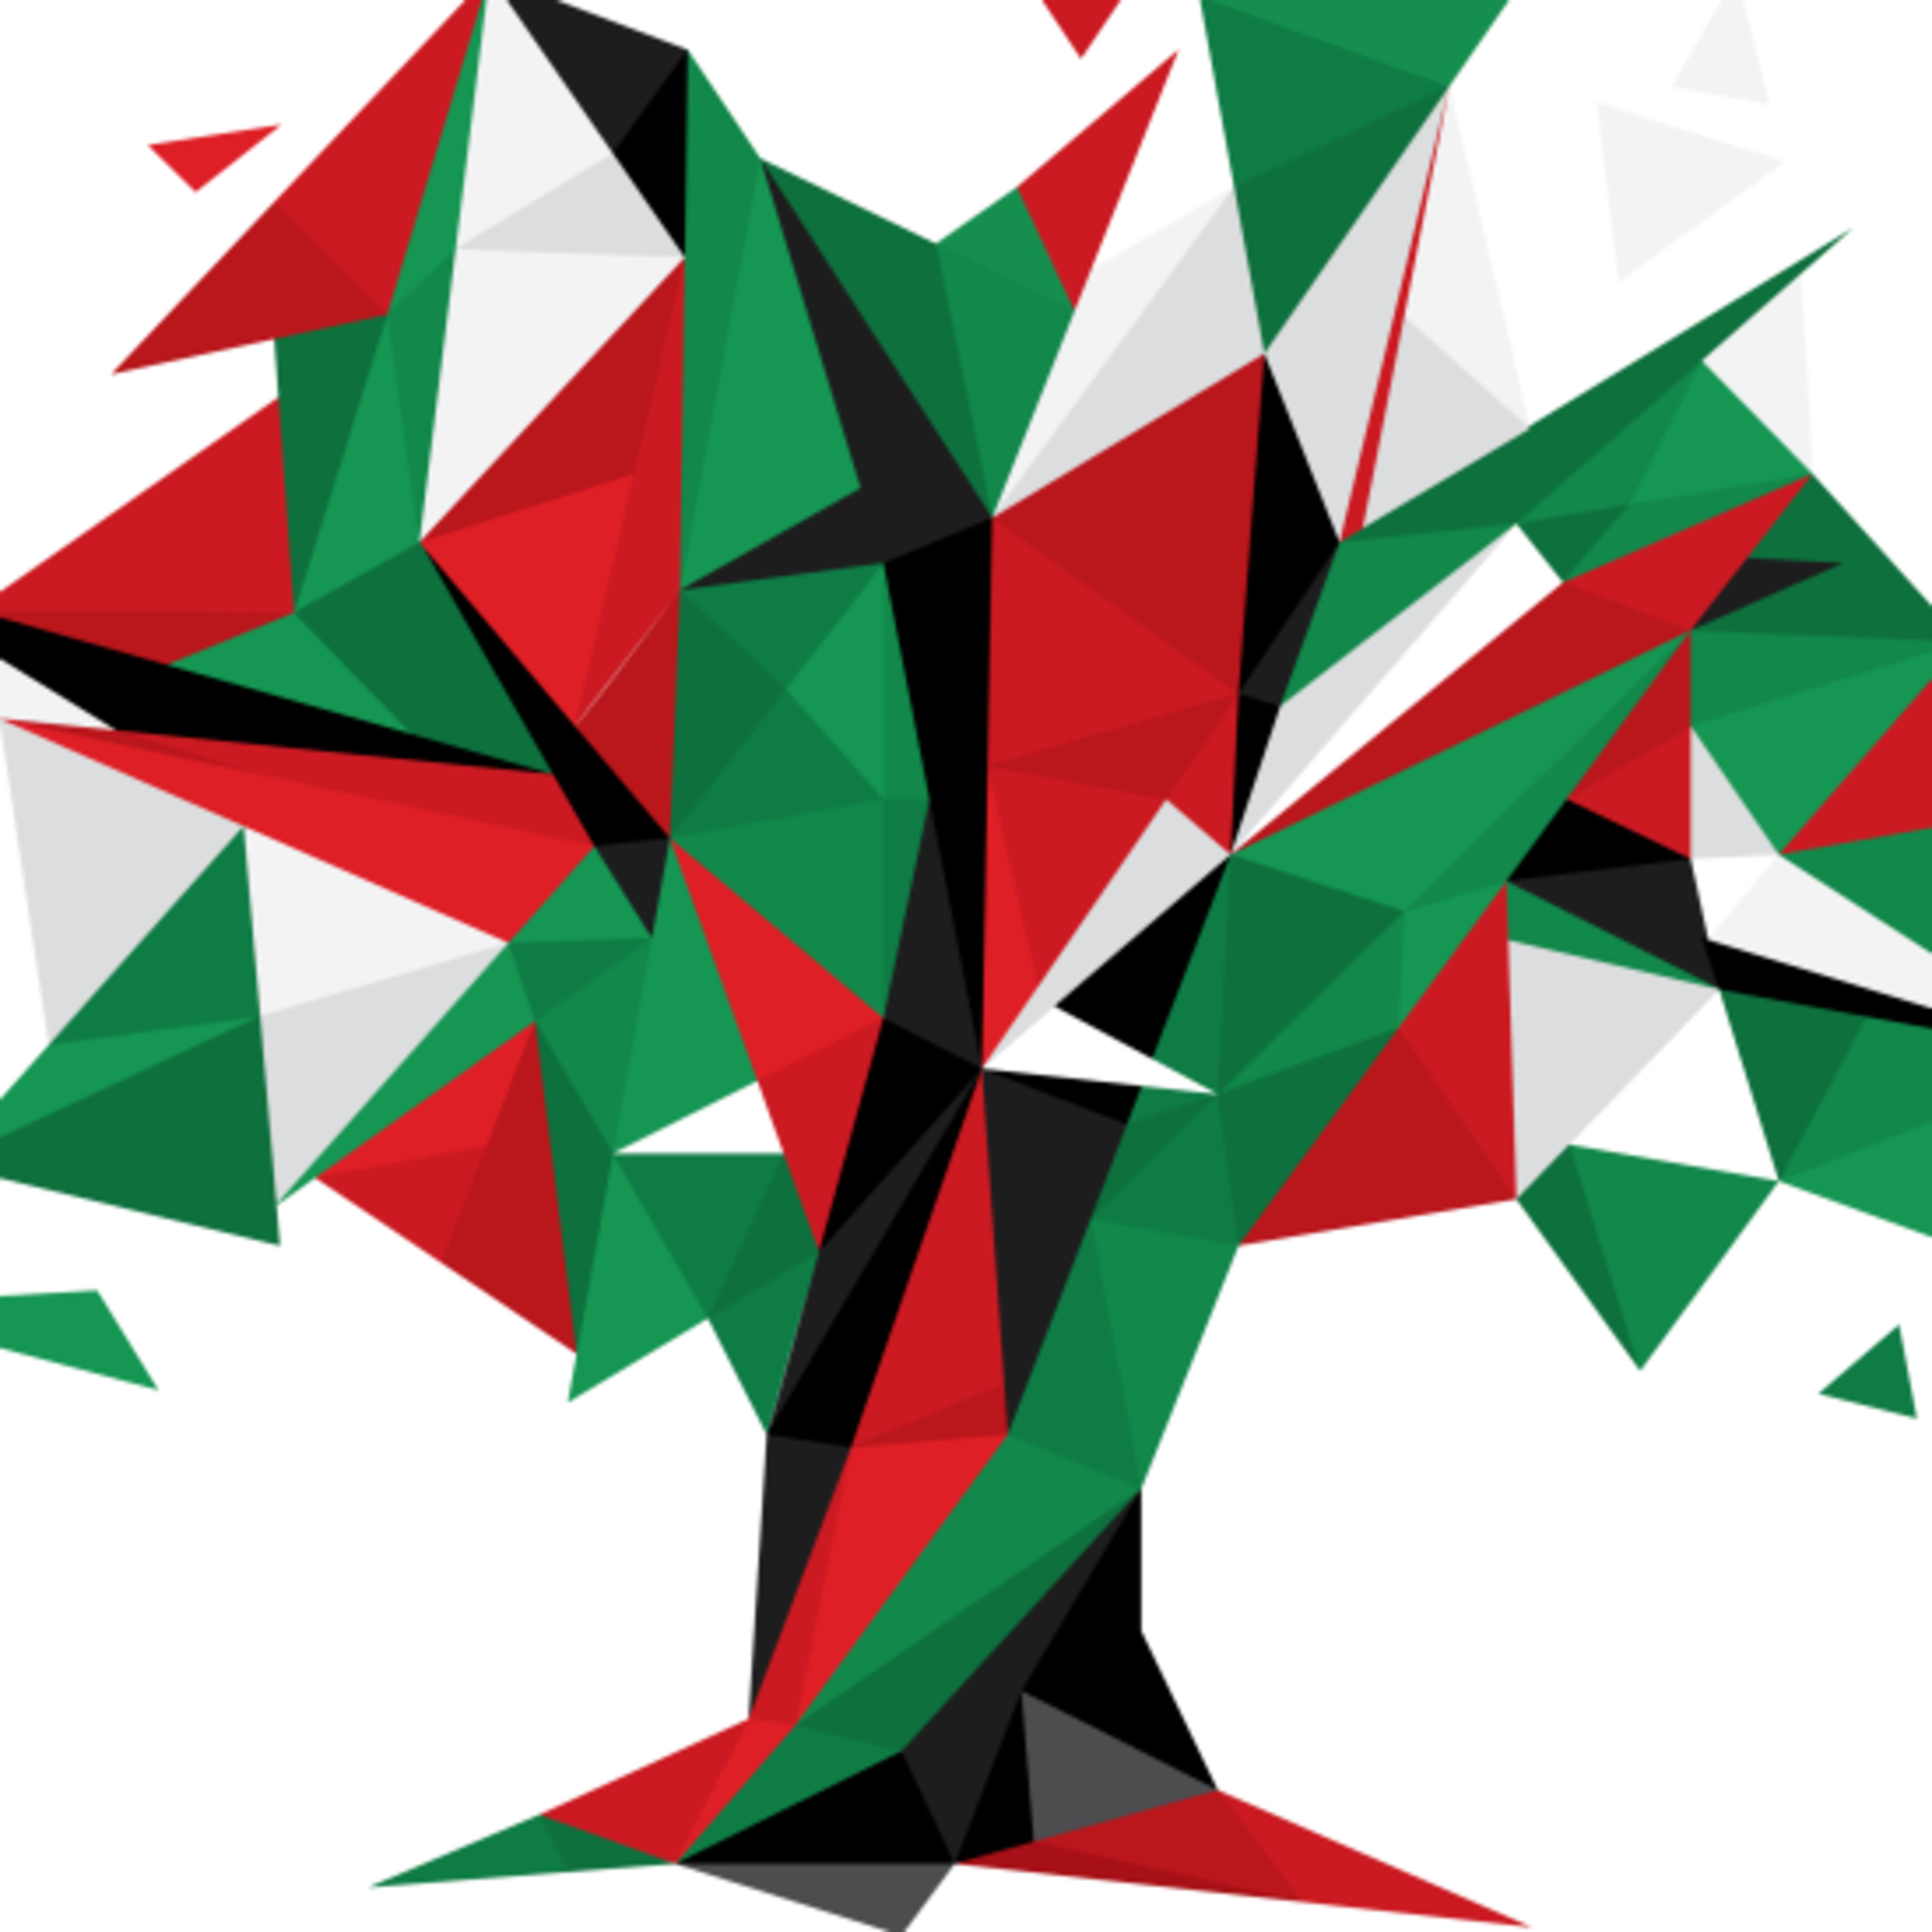 Ep 57- Palestine and BDS (Boycott, Divestment and Sanctions)